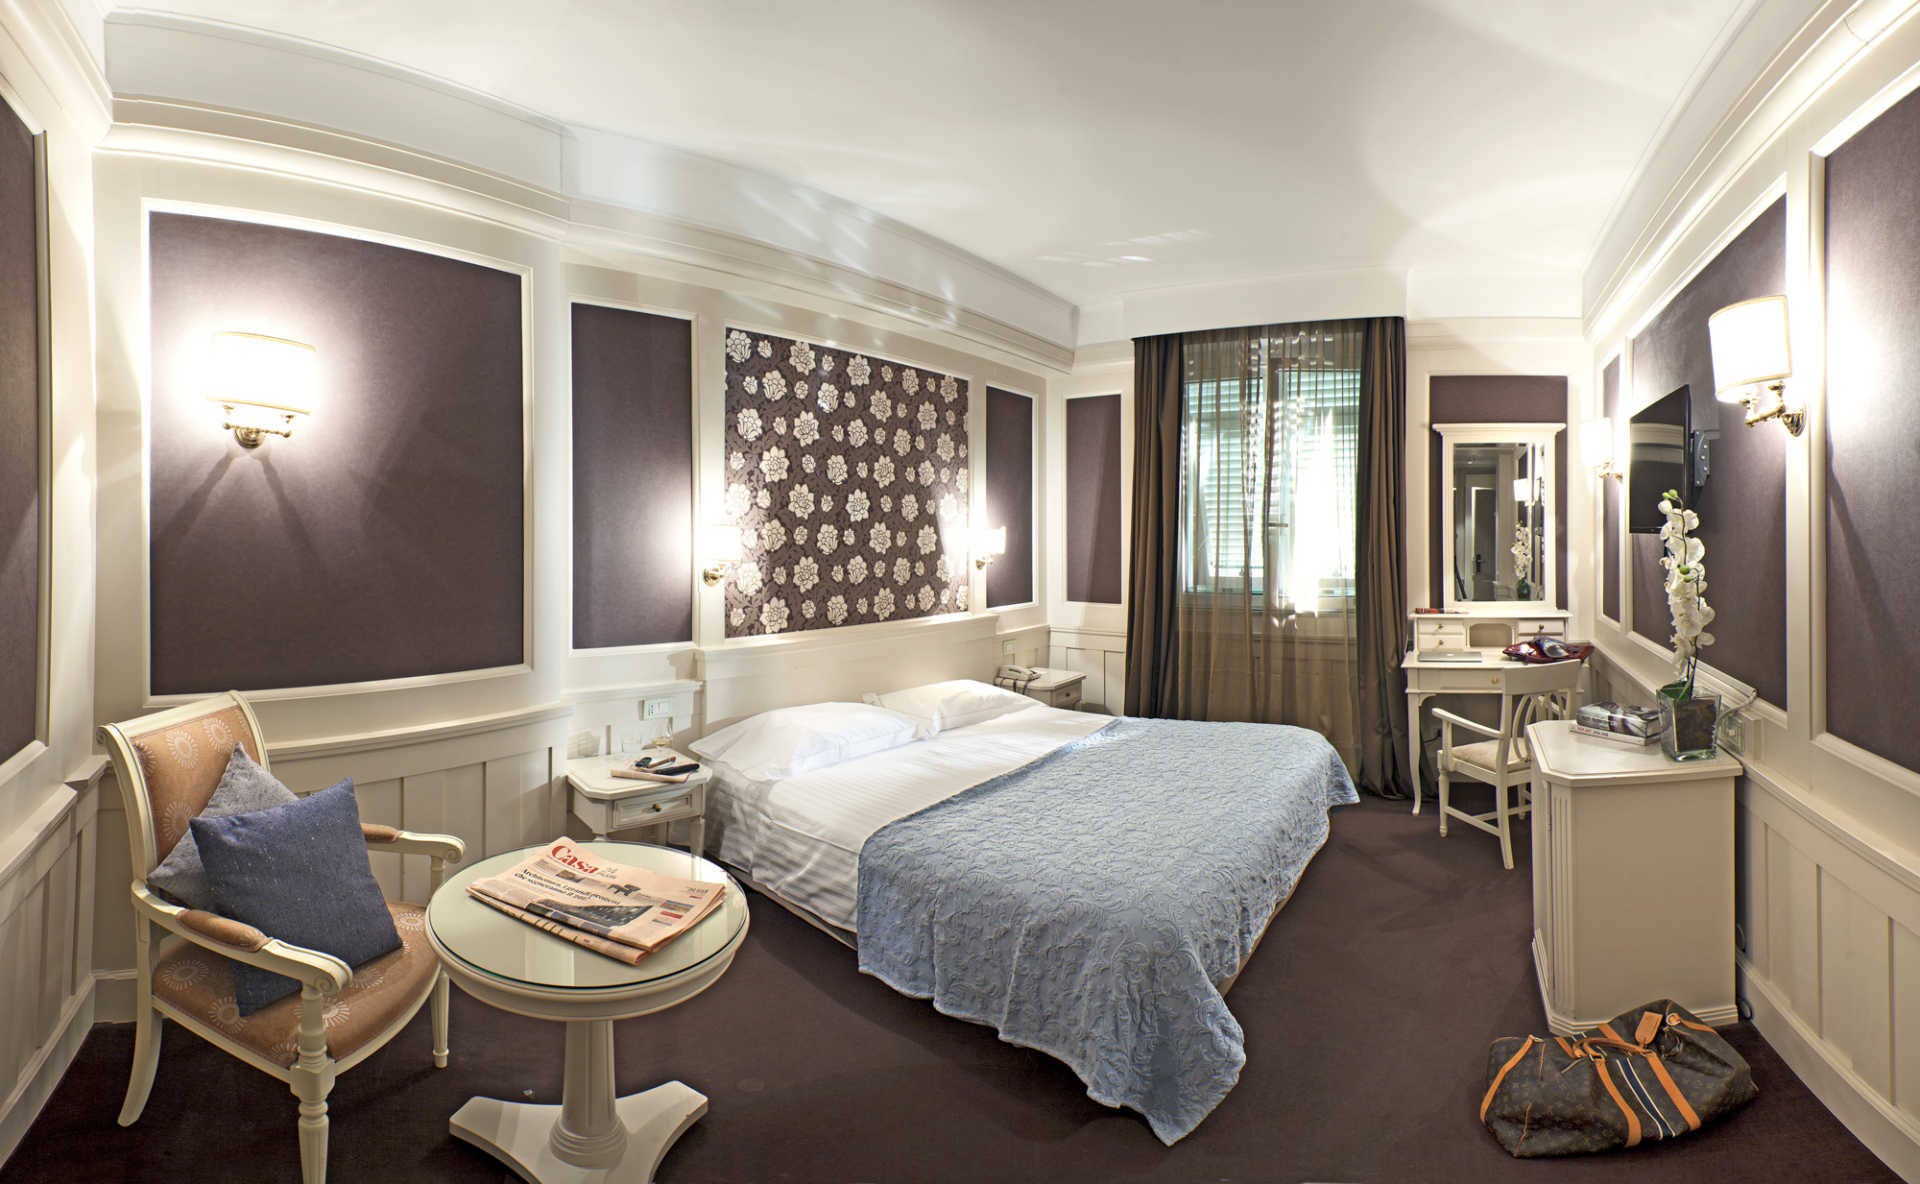 Camere europa hotel design spa 1877 for Design hotels europa